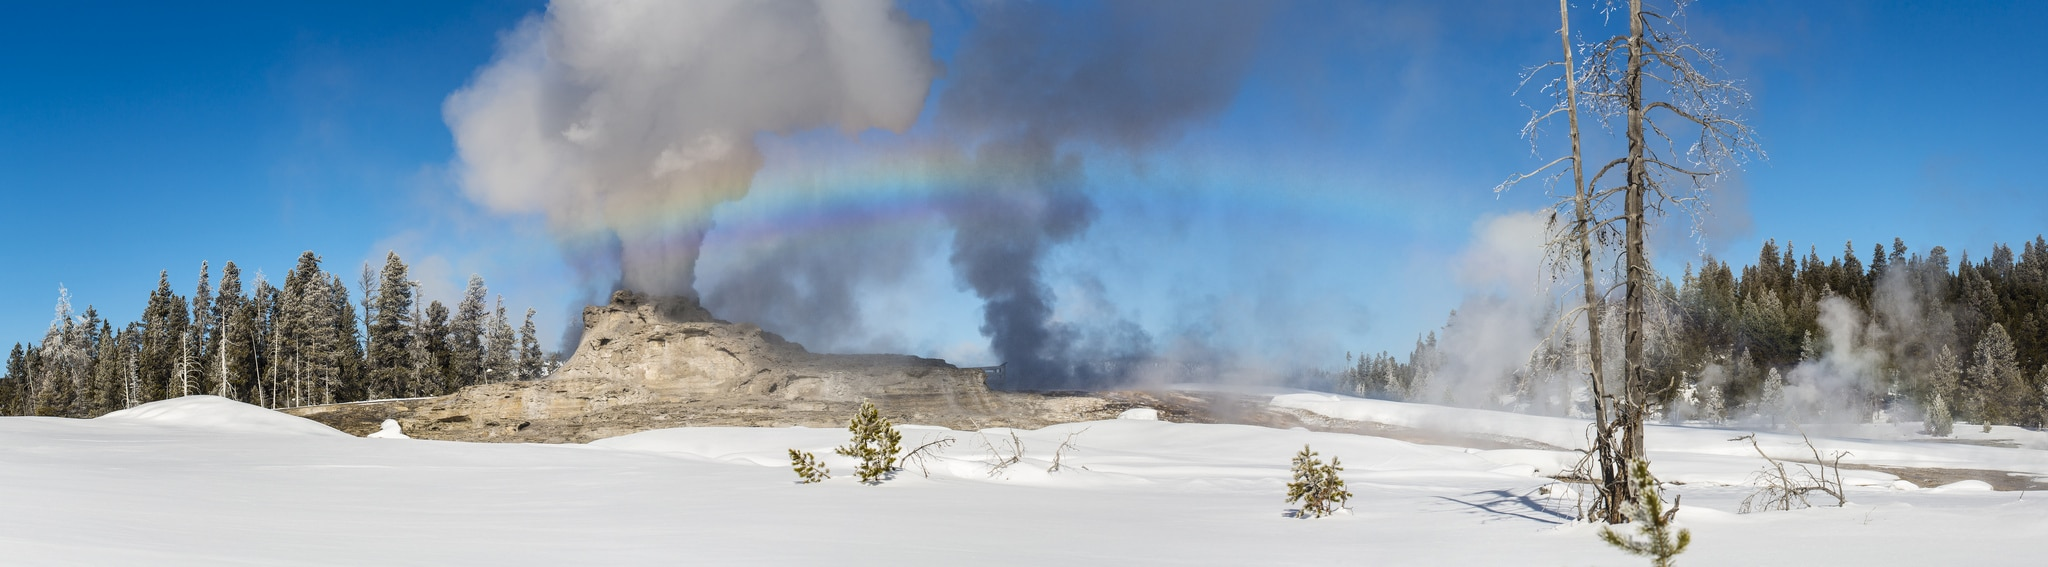 "Castle Geyser Eruption & Rainbow"" took 1st Place scenic category for Jacob Frank in the 2014-15 Yellowstone Employee Winter Photo Contest."